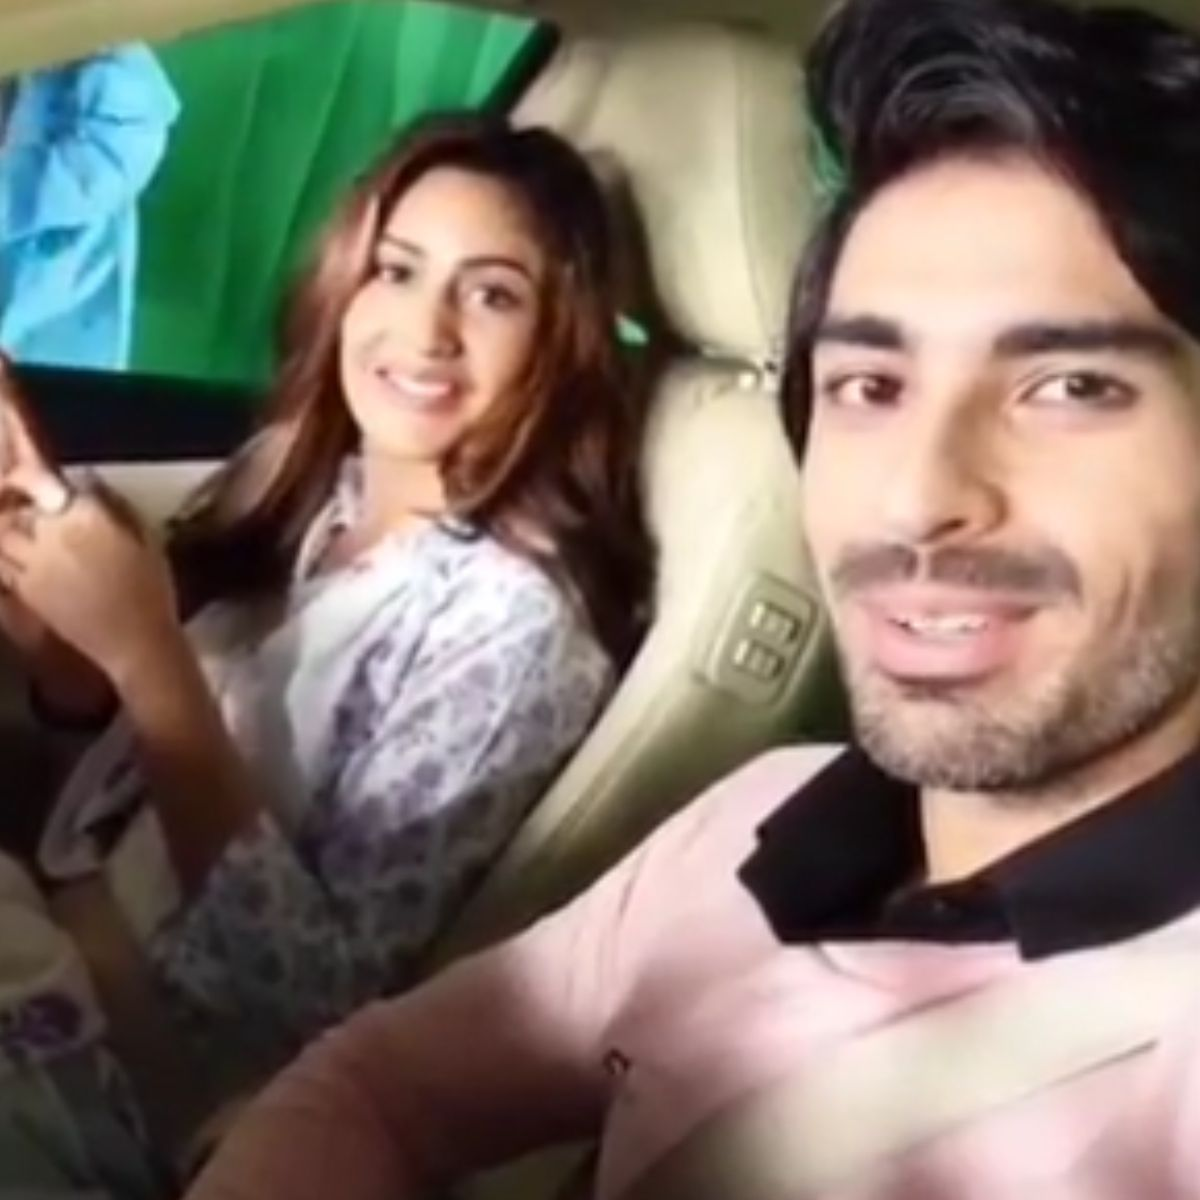 Surbhi Chandna Calls Naagin 5 Co Star Mohit Sehgal Best Bani Jay S Fun Bts Banter Has Left Fans Drooling Surbhi Chandna Supernatural Thrillers Television Industry